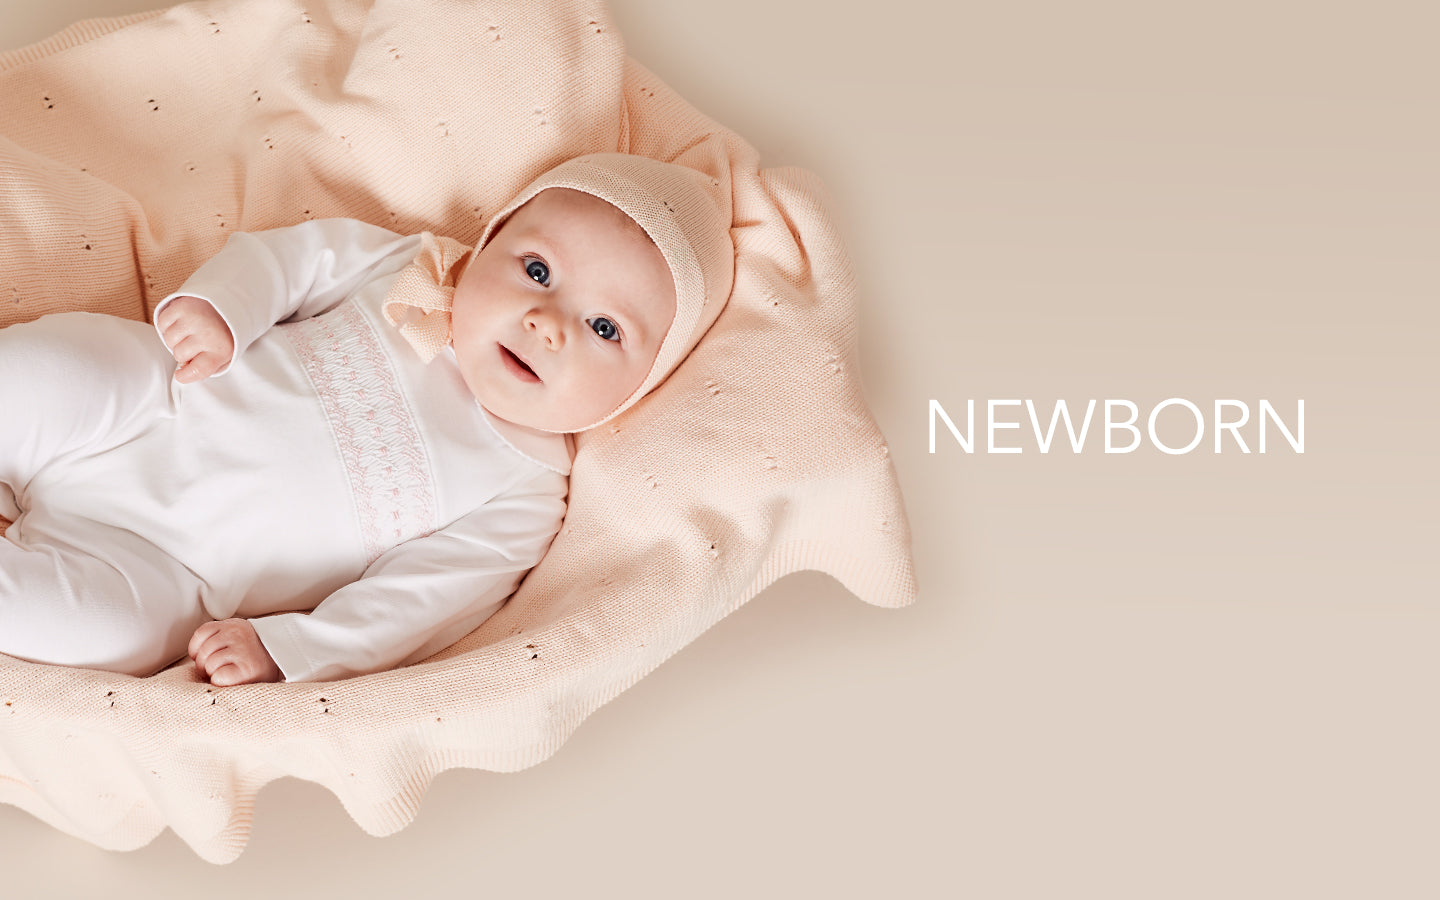 NEWBORN LOOKBOOK